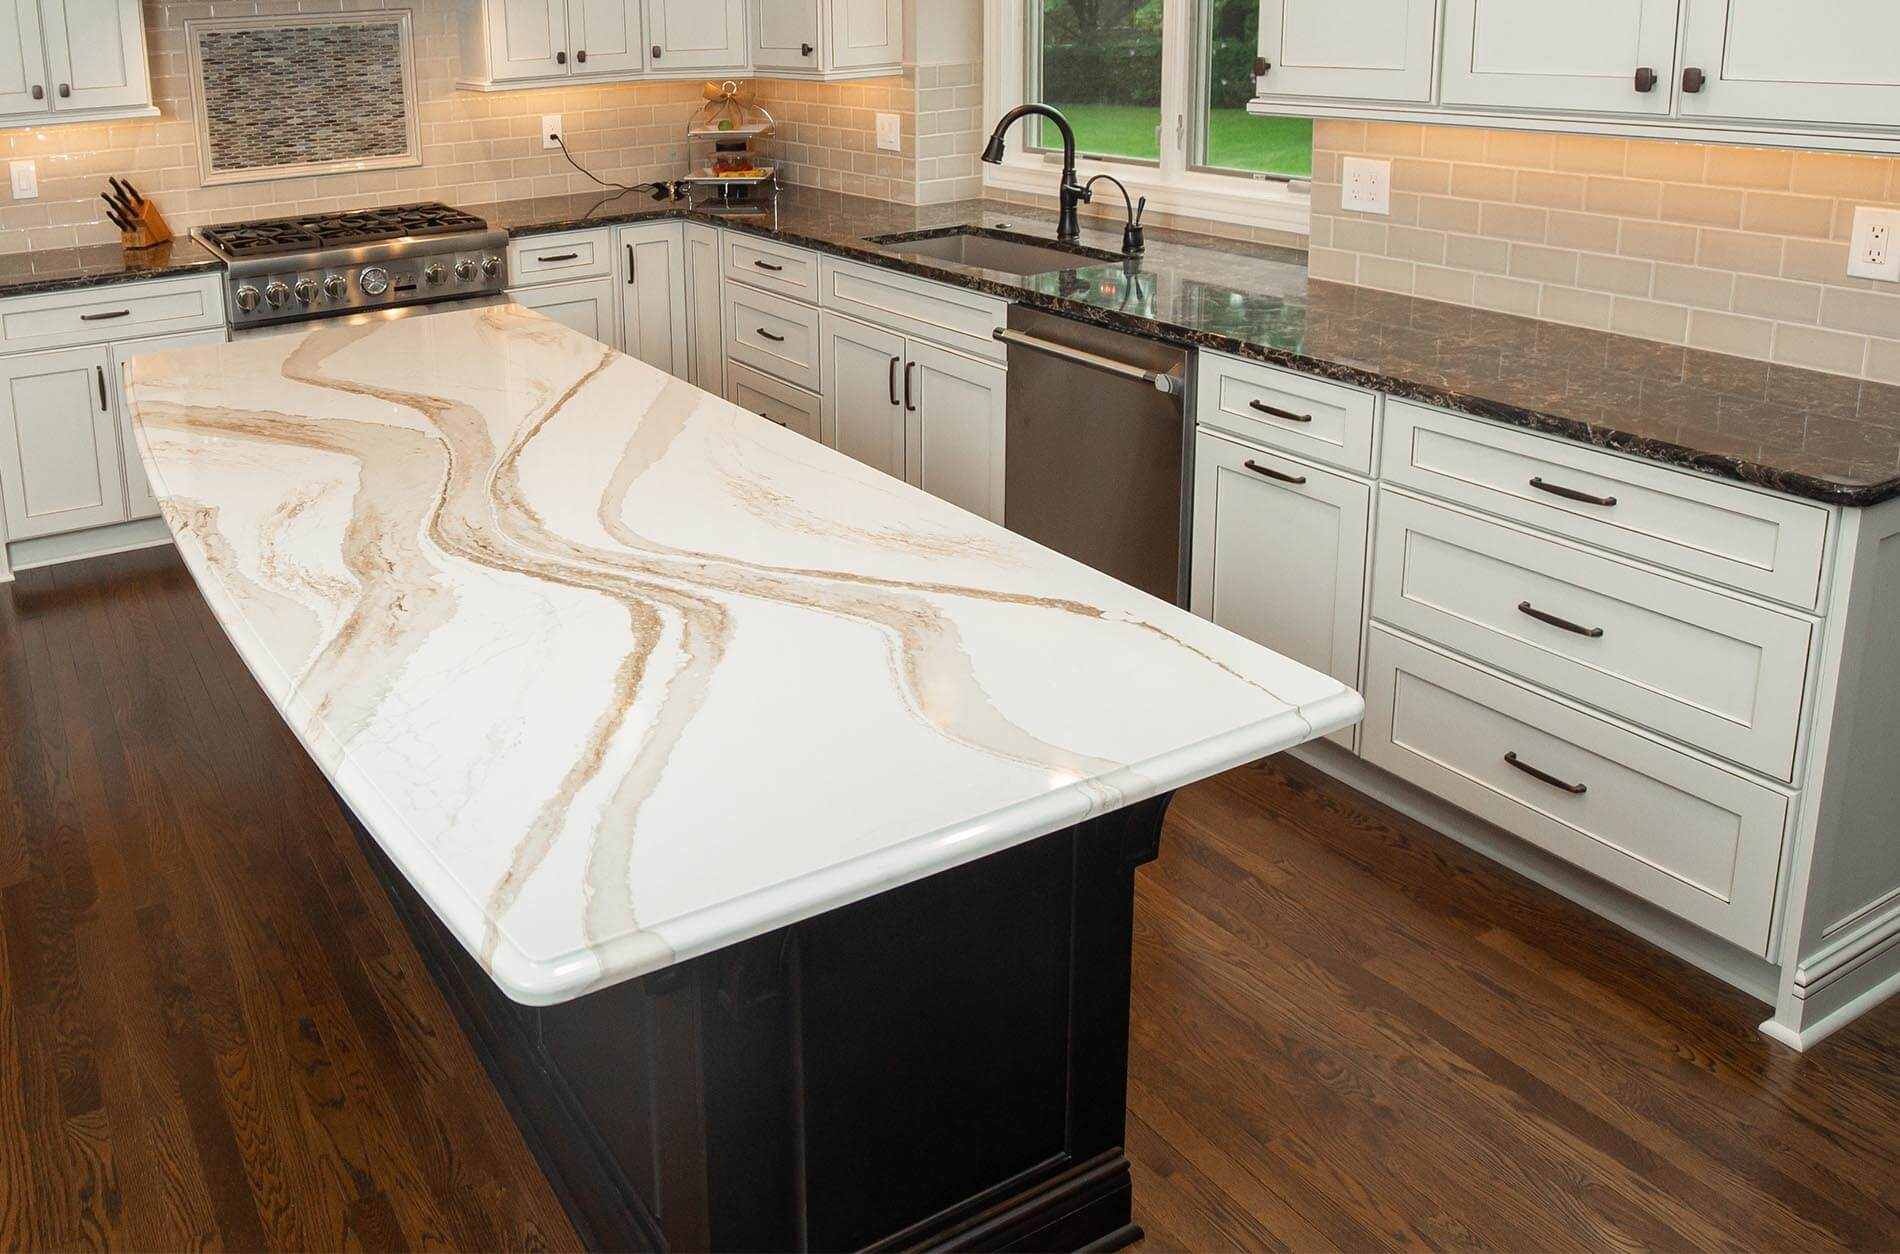 From tiles to stone and beyond. MJ Kitchen & Bath Kitchen Project – Touch of Gold